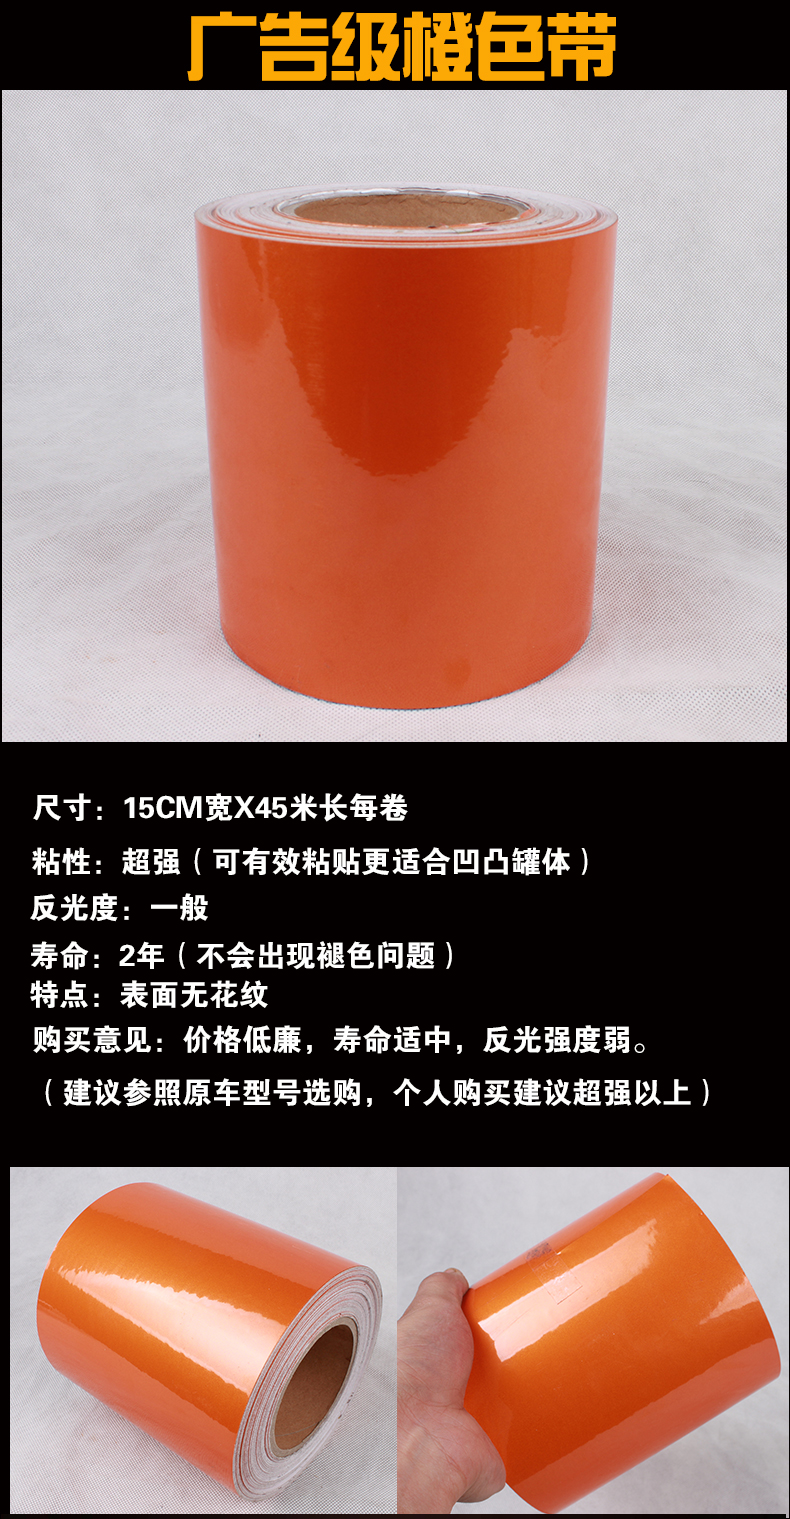 481 Orange Reflector Strip Reflector For Dangerous Goods